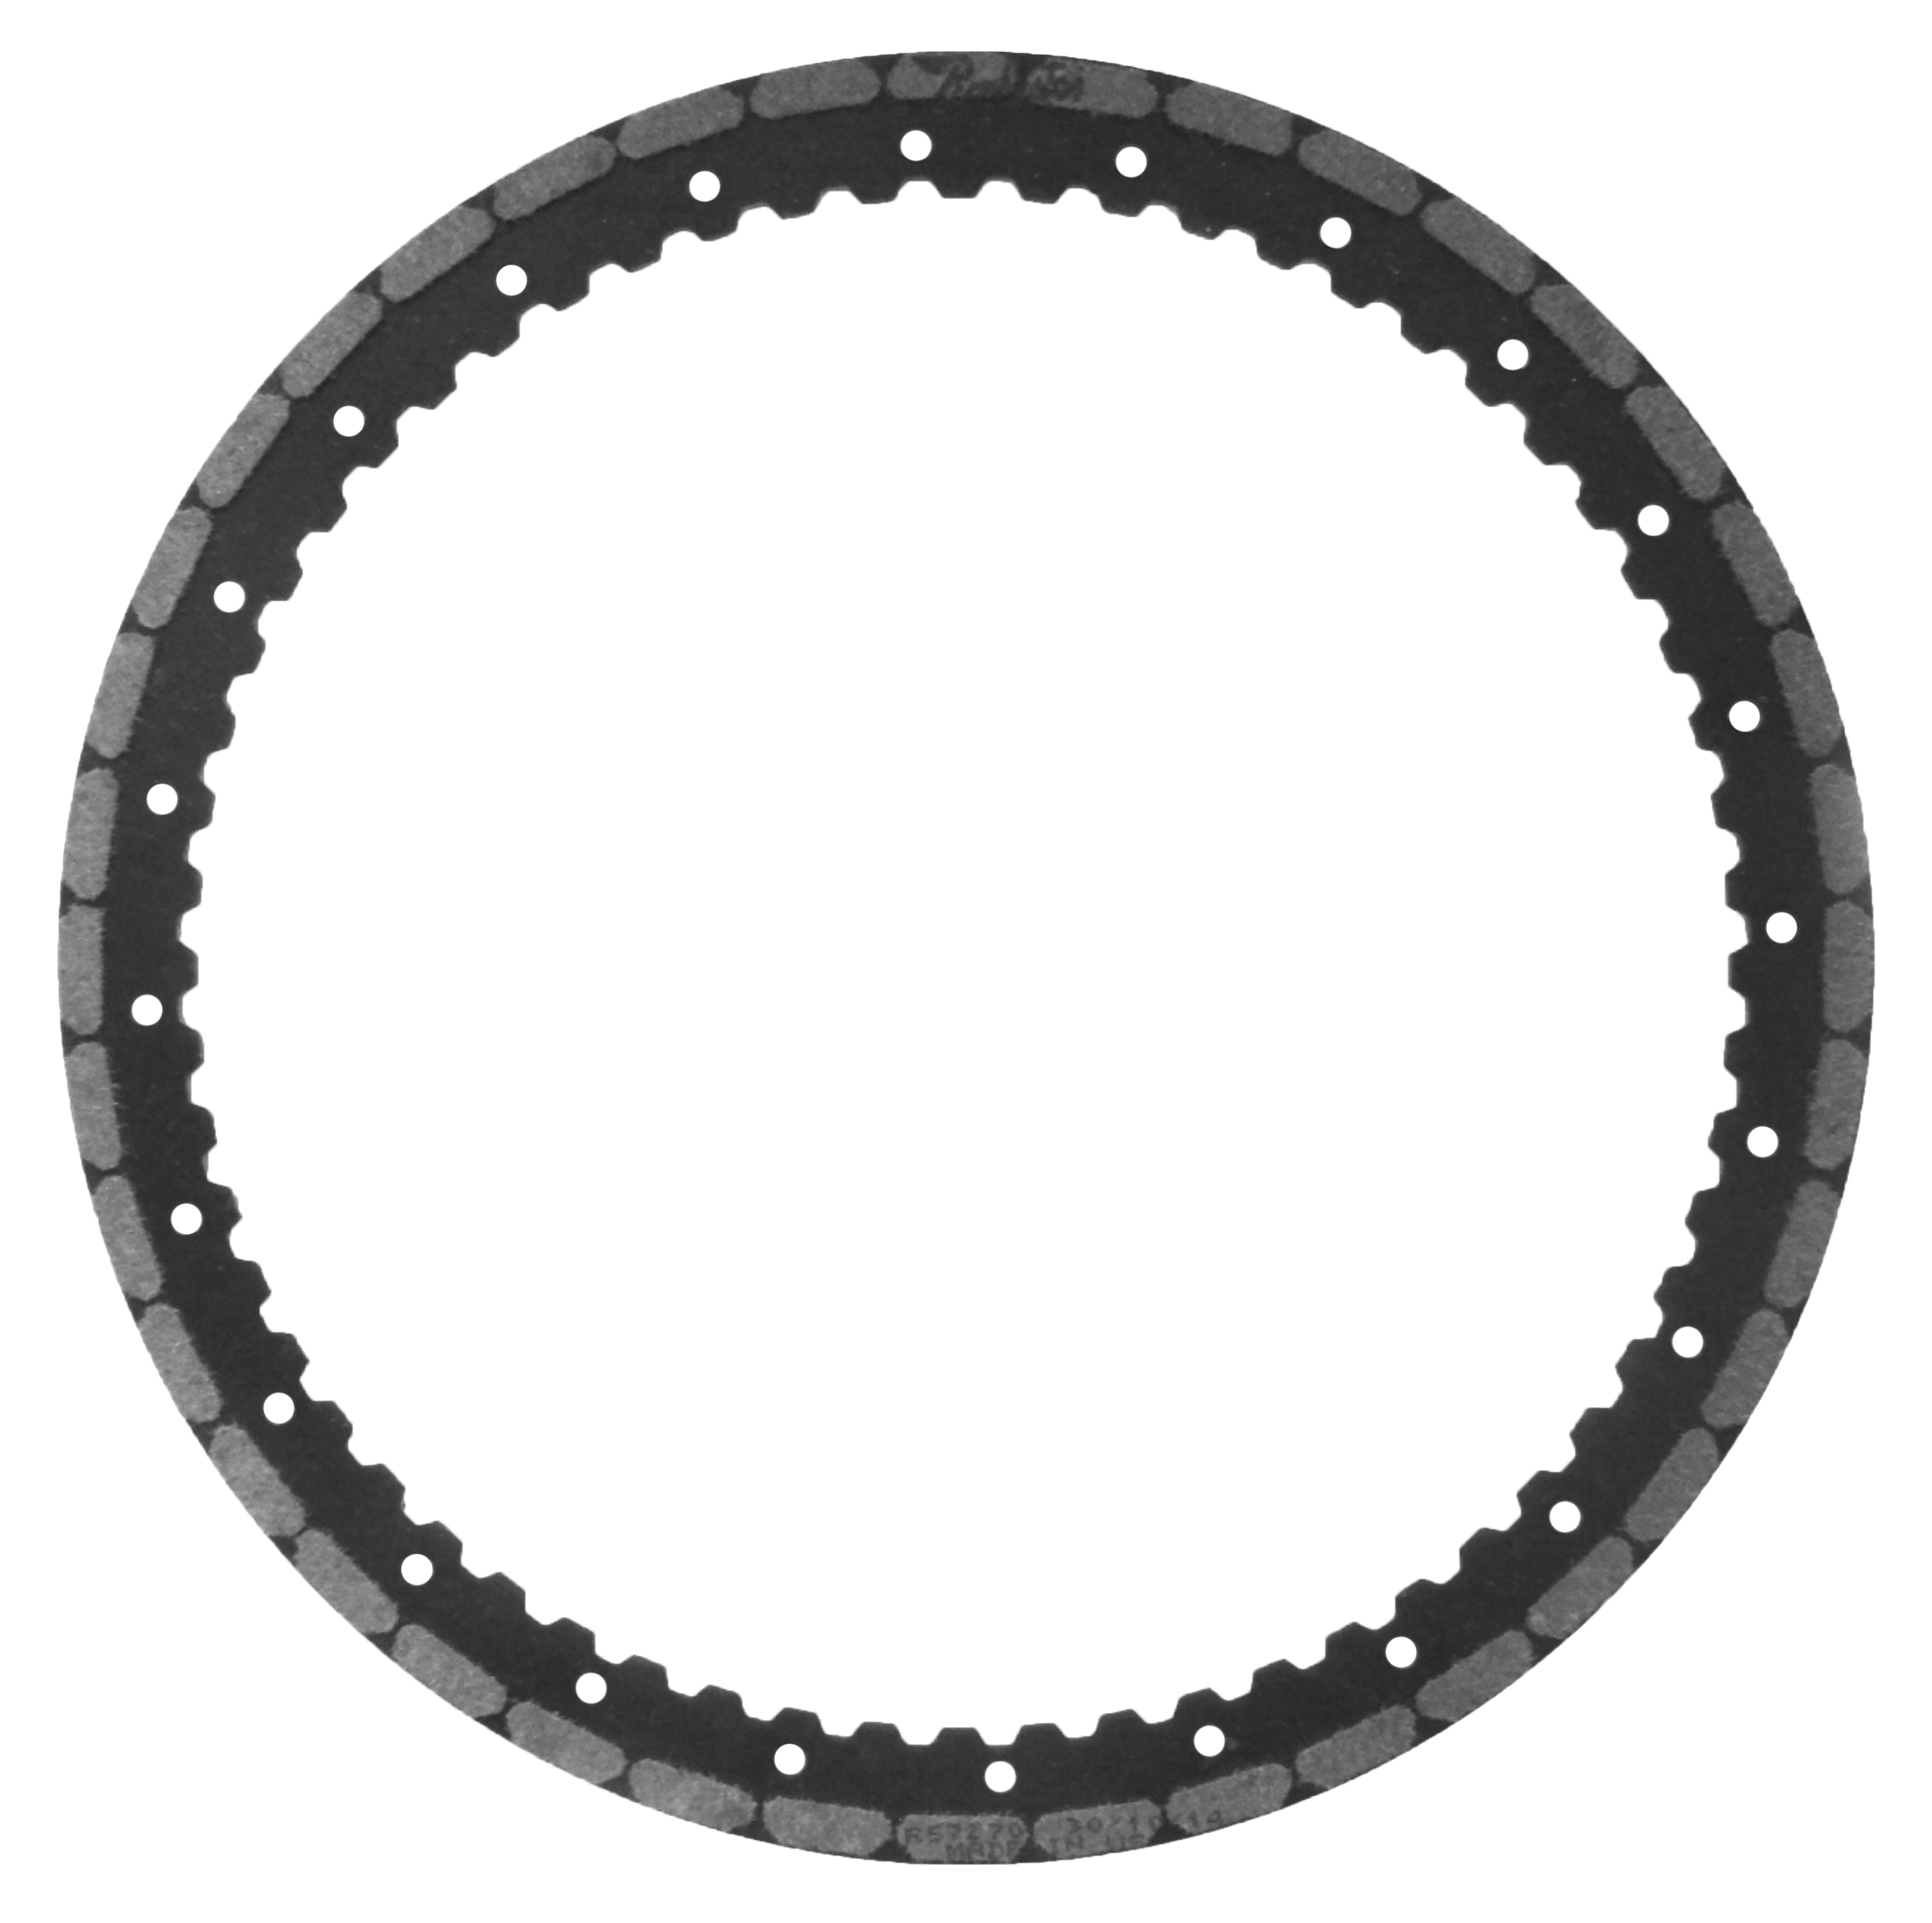 R572701 | 2001-ON Friction Clutch Plate High Energy B2 Low, Reverse (Segmented) High Energy